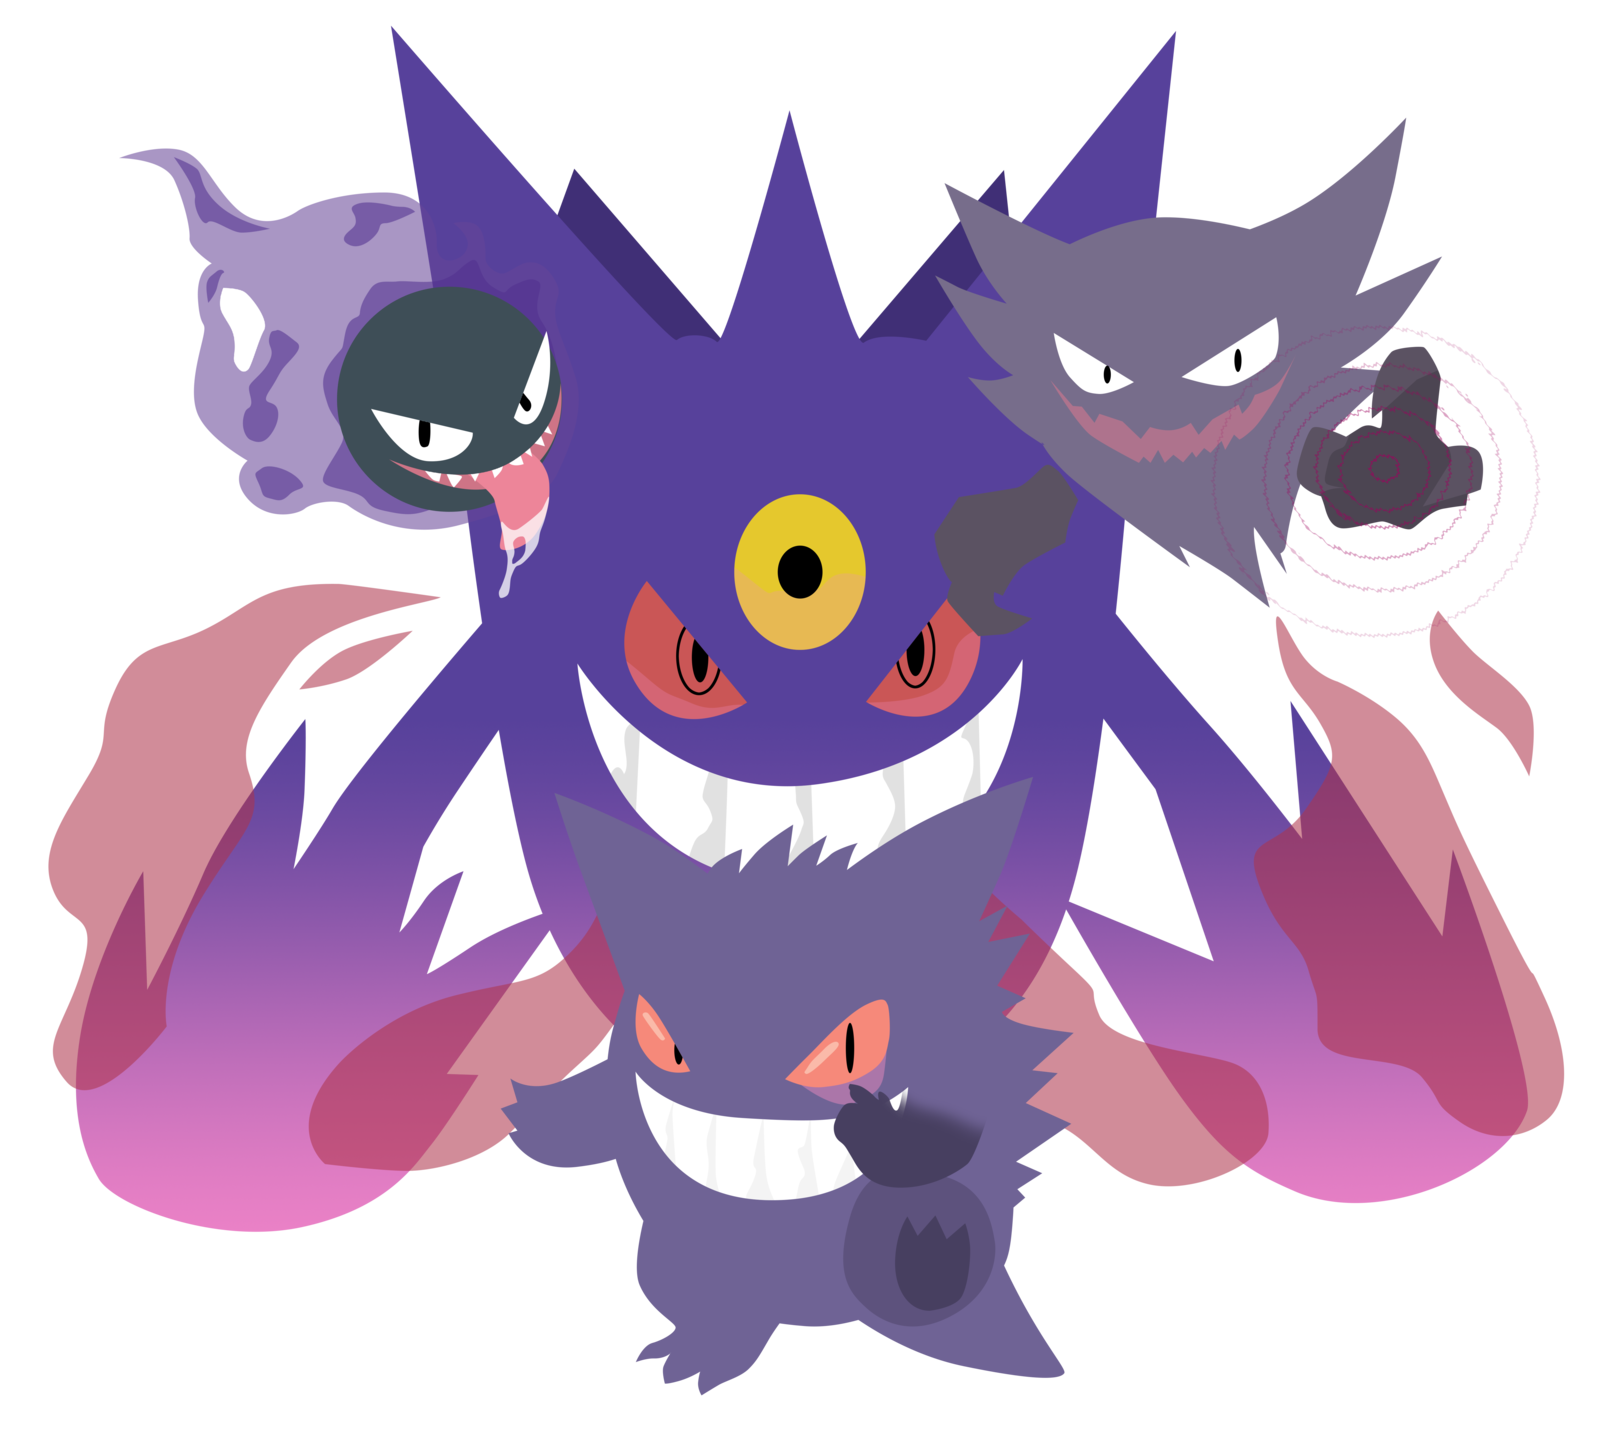 haunter drawing shiny gastly